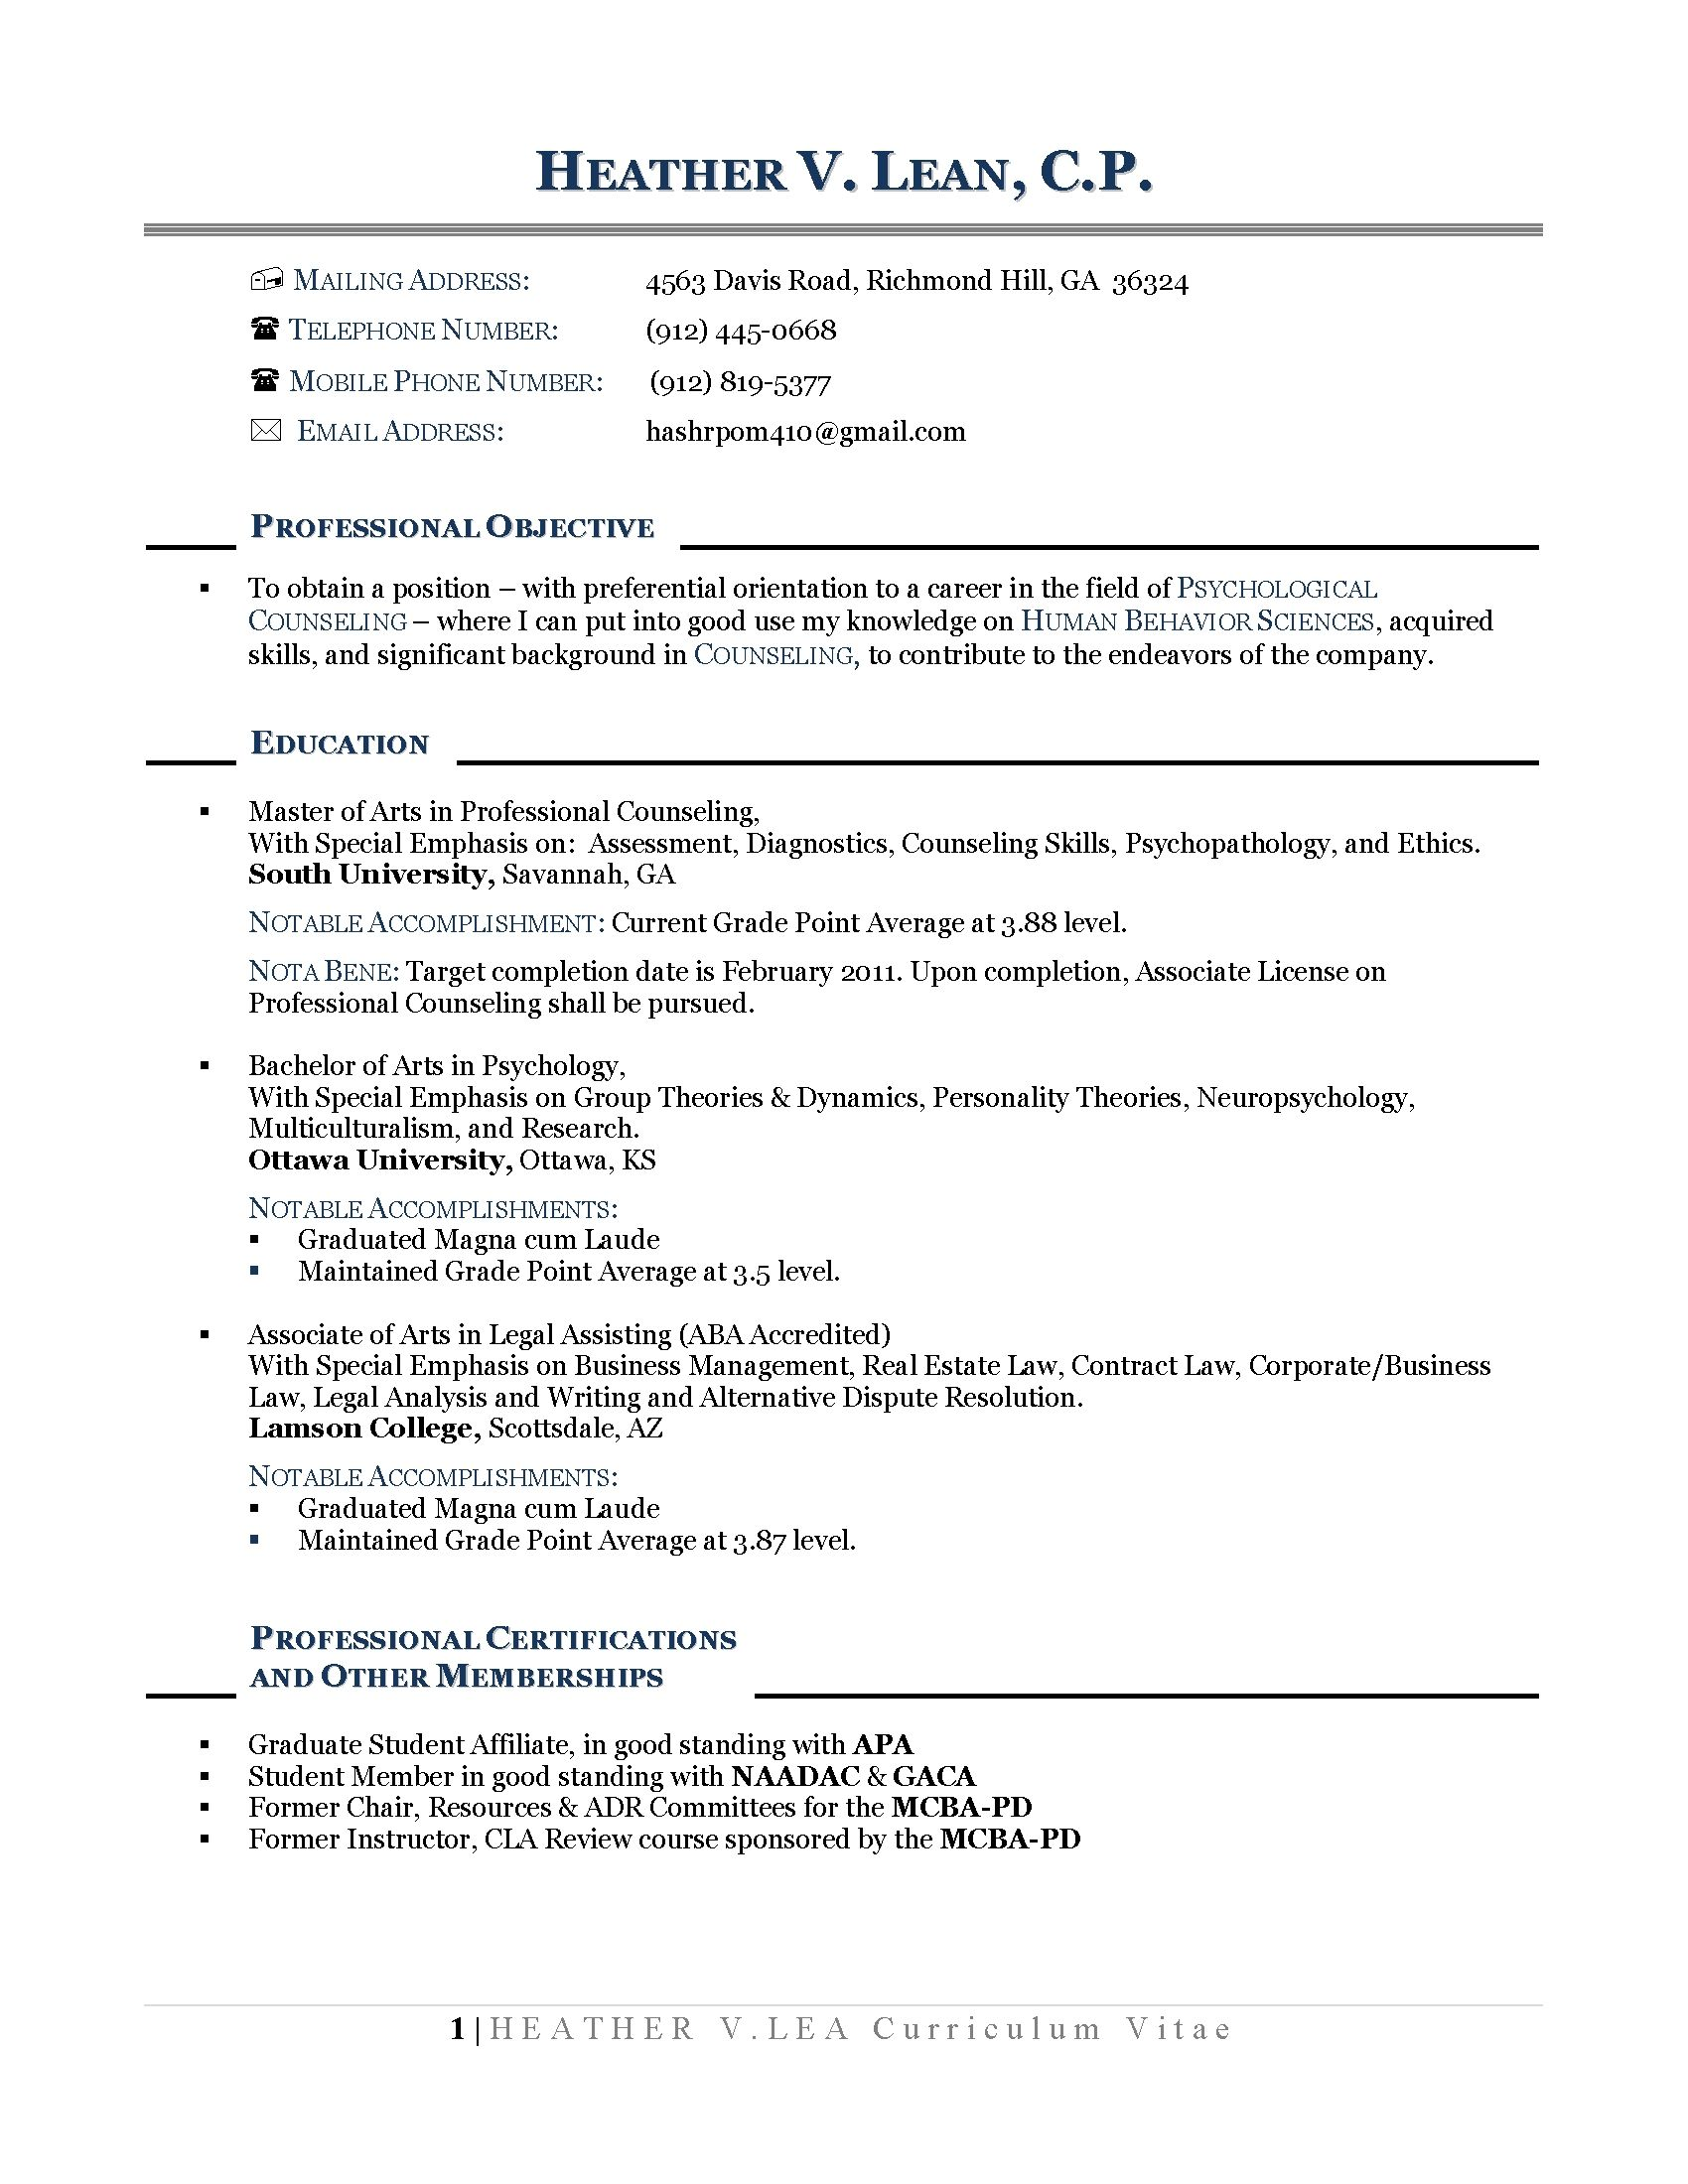 Associate Attorney Resume Extraordinary Resume Examples Career Change  Pinterest  Resume Examples And Change